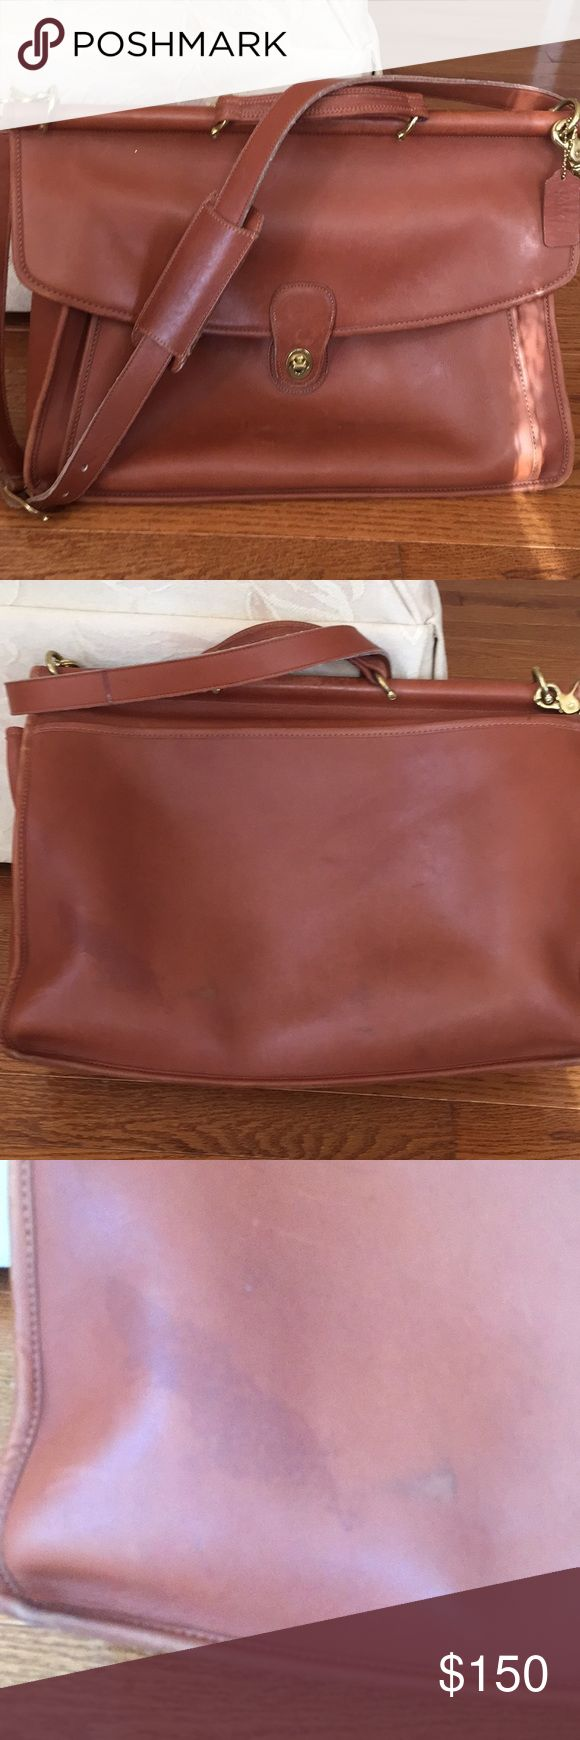 "COACH VINTAGE BRIEFCASE/LAPTOP BAG! Gorgeous vintage COACH briefcase! Measures 16 x 13""! Base measures 4 1/2"" wide! It has some wear please see pictures! This is a vintage bag so it has imperfections & wear! It adds to the bag! Coach Bags Laptop Bags"